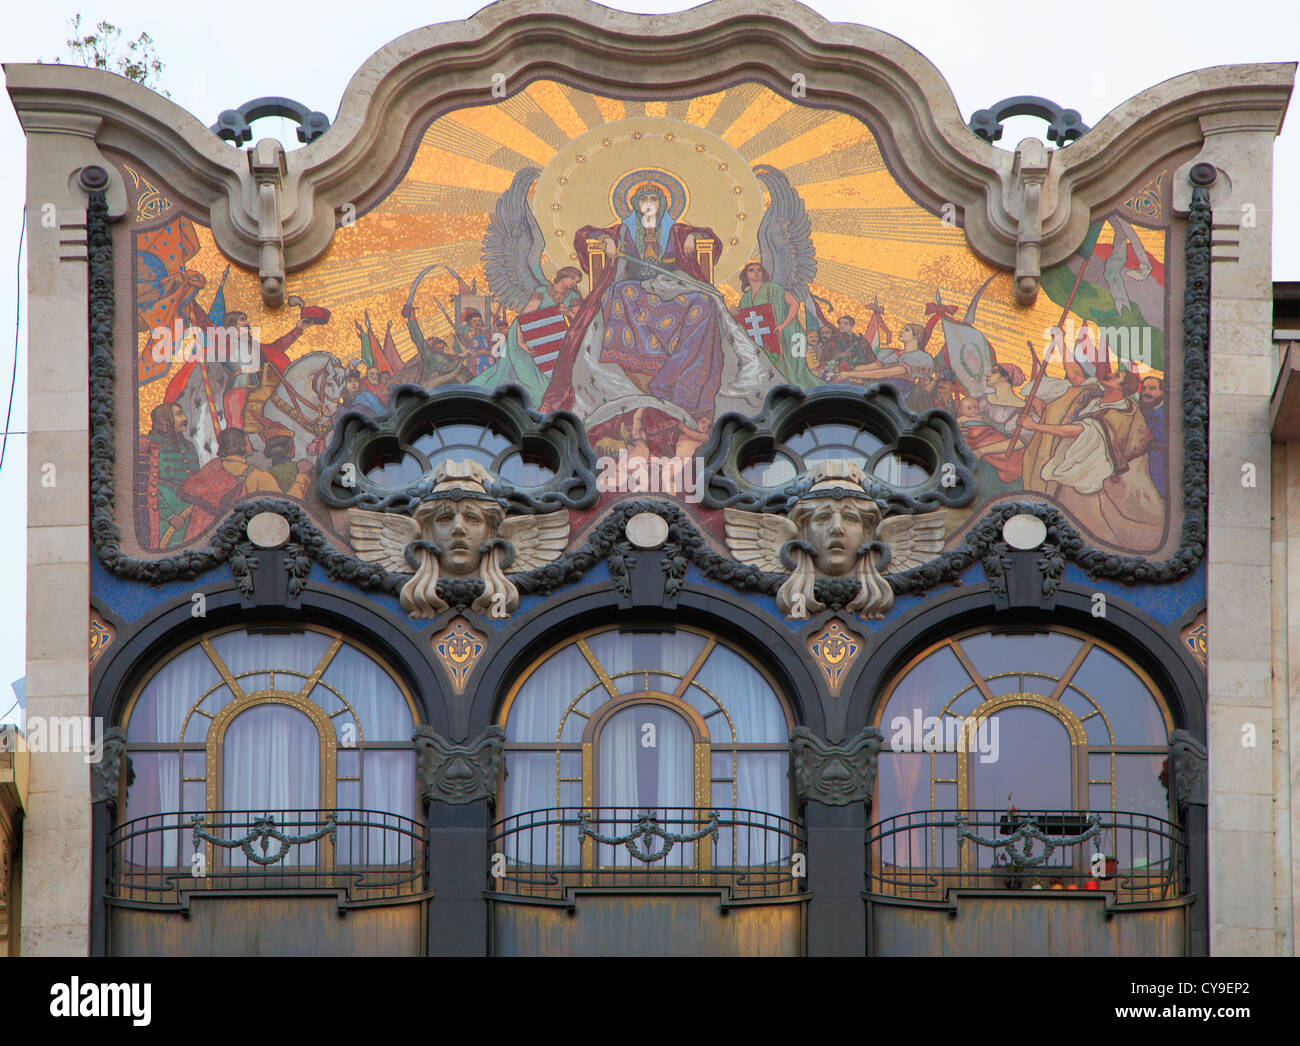 Hungary Budapest Art Nouveau Architecture Detail Stock